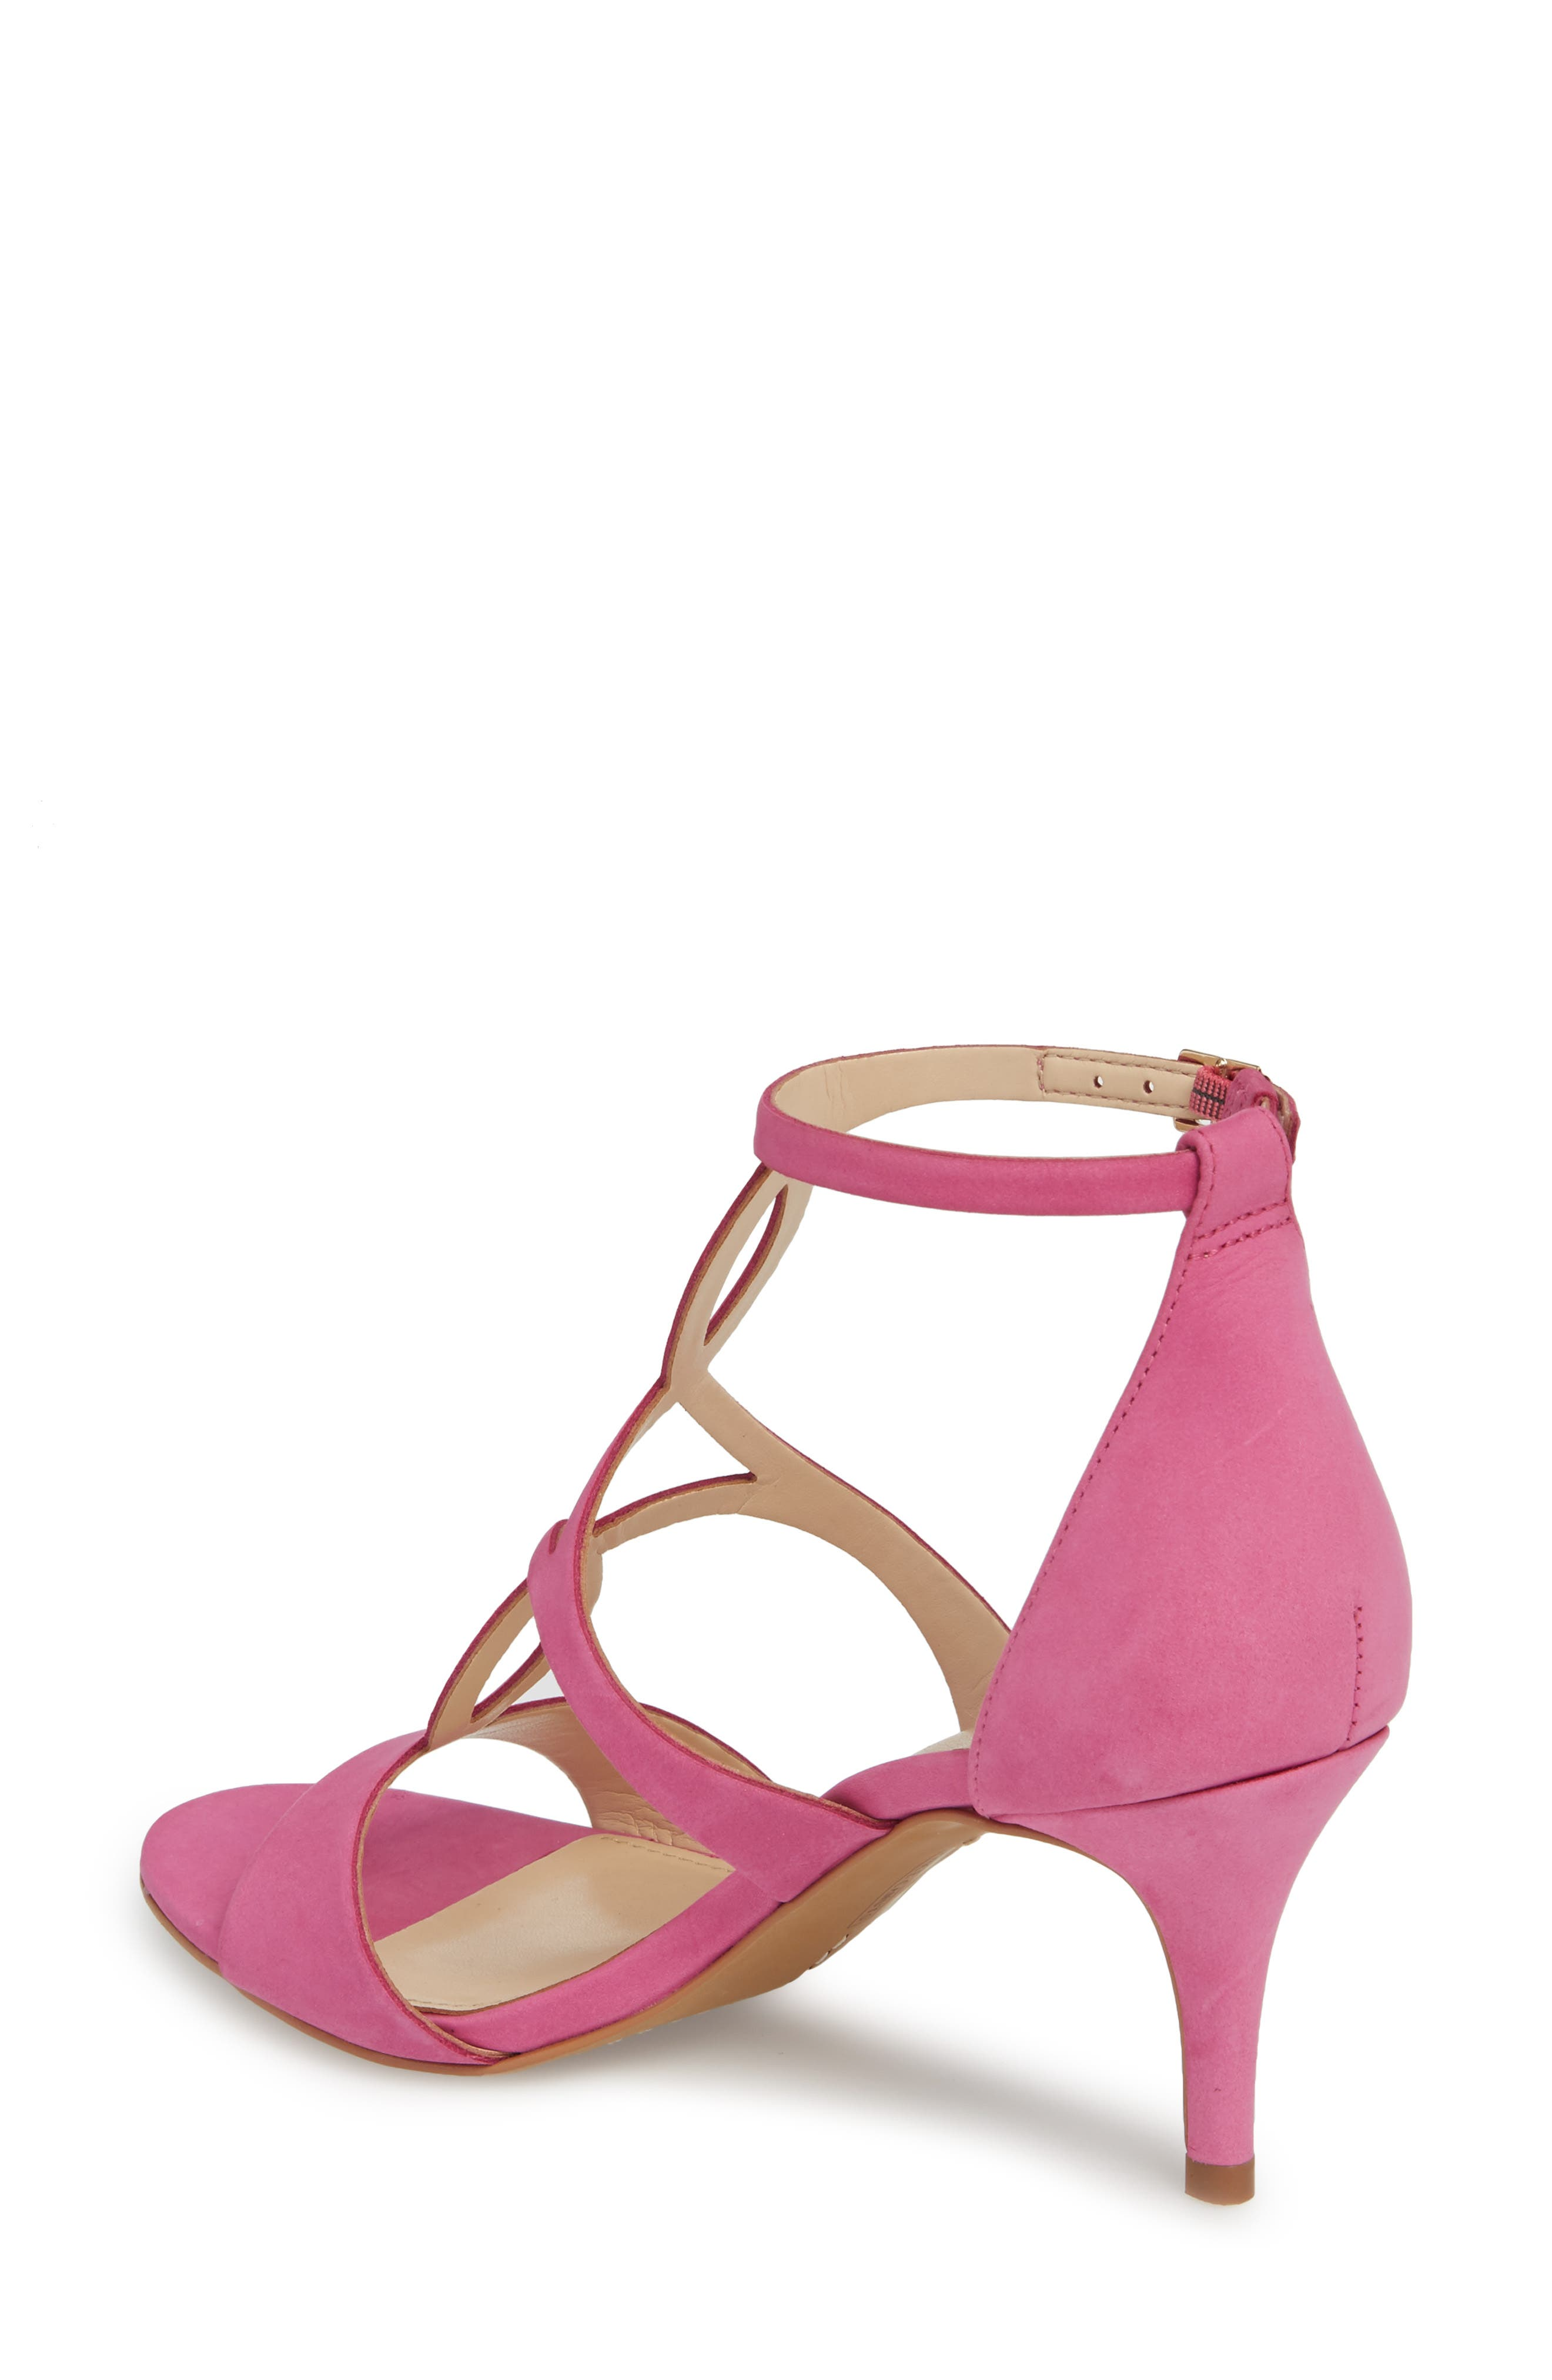 Payto Sandal,                             Alternate thumbnail 2, color,                             Pink Leather